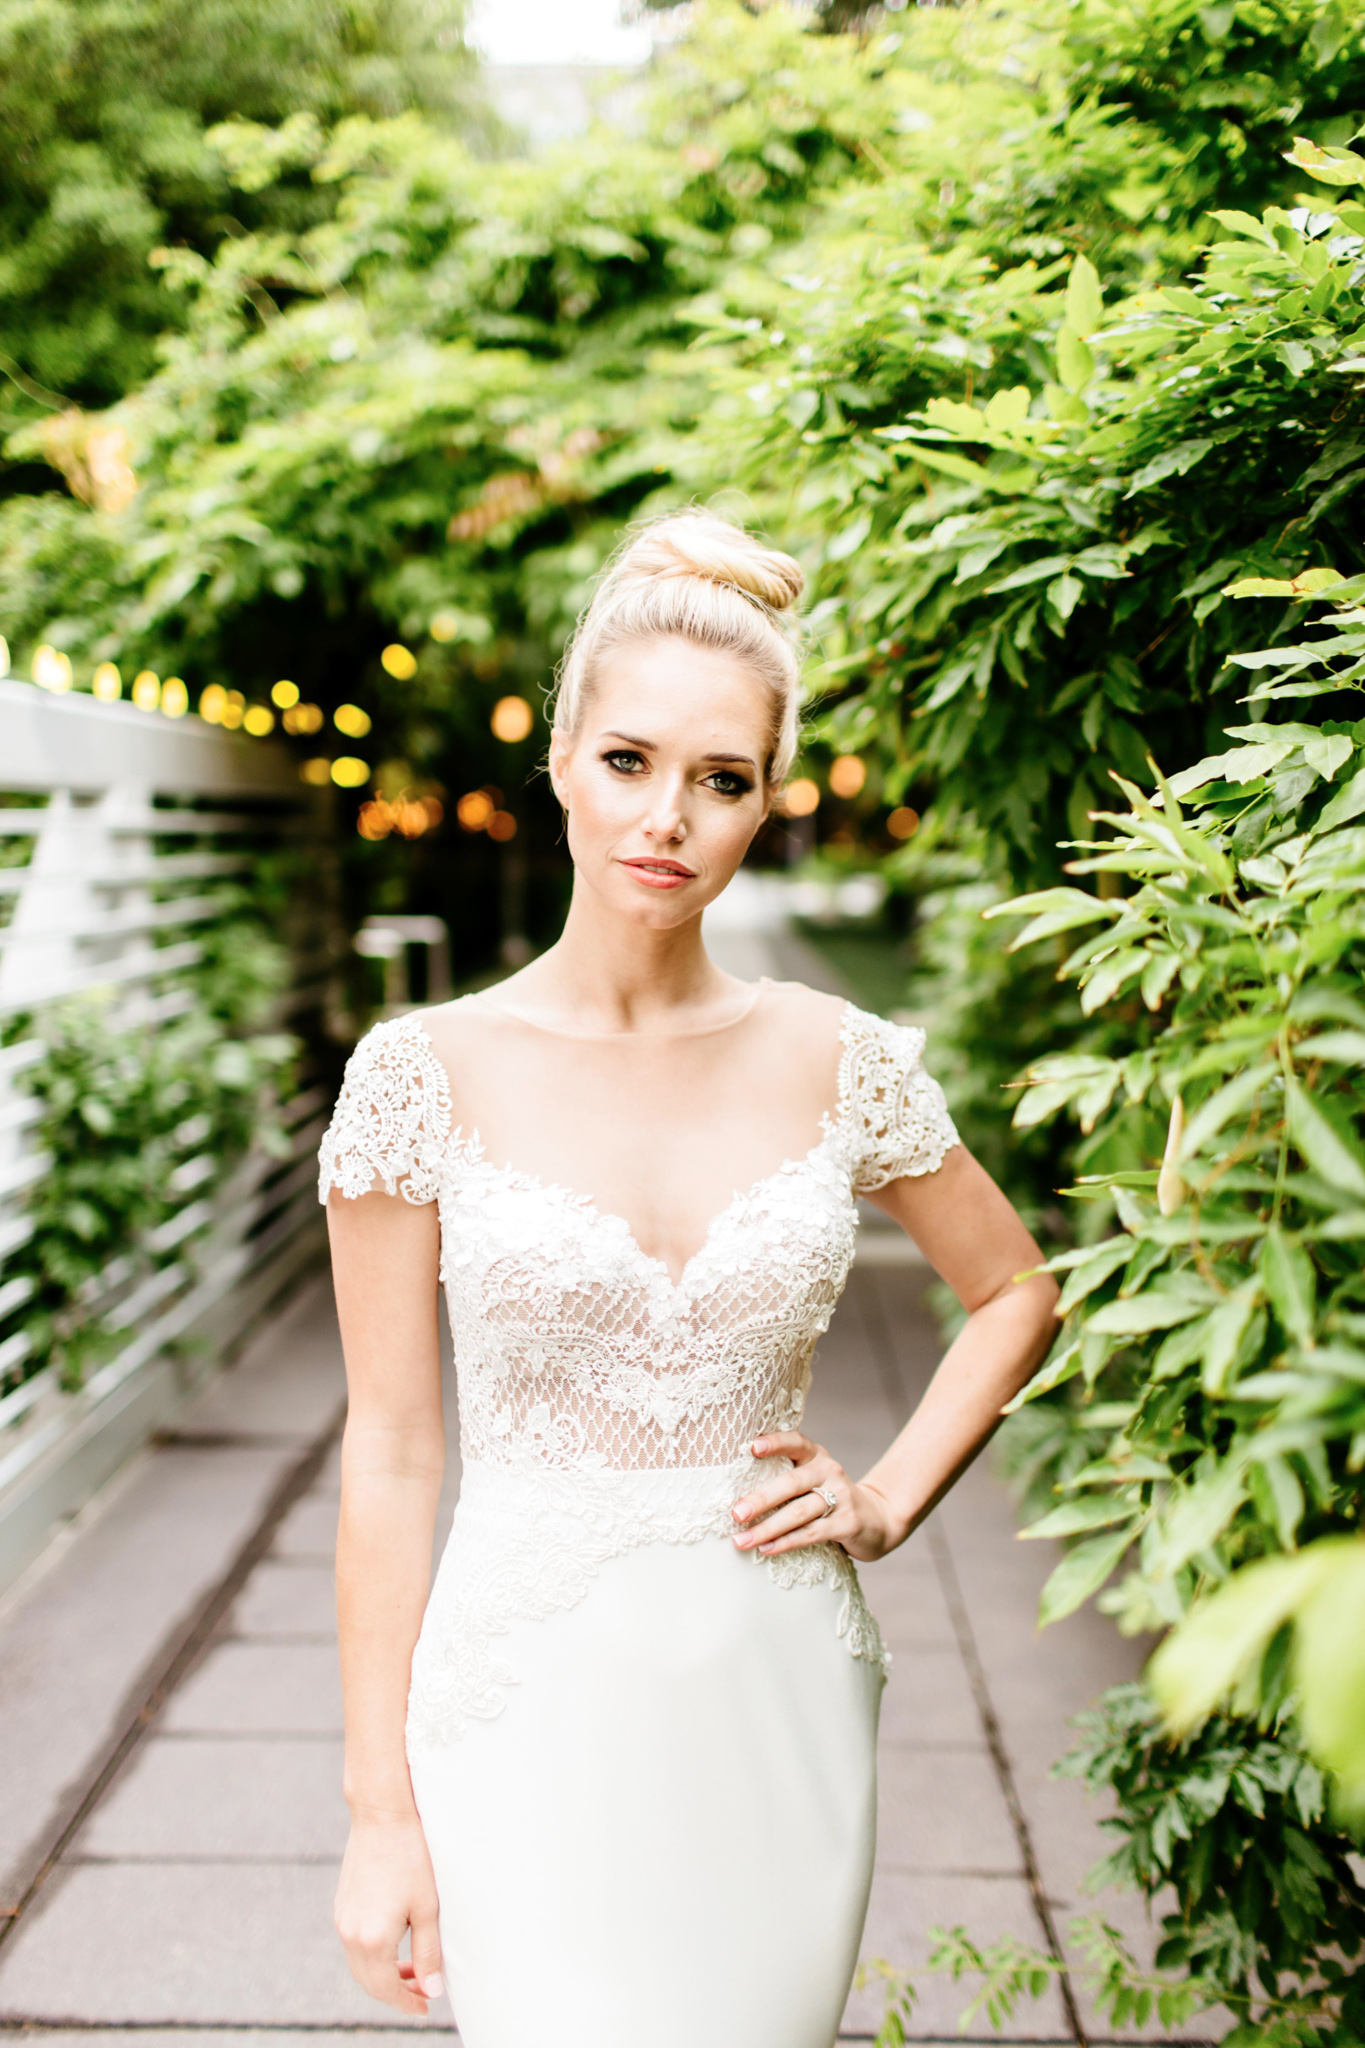 Styled wedding shoot at Marie Gabrielle - Alexa Vossler Photo-272.jpg